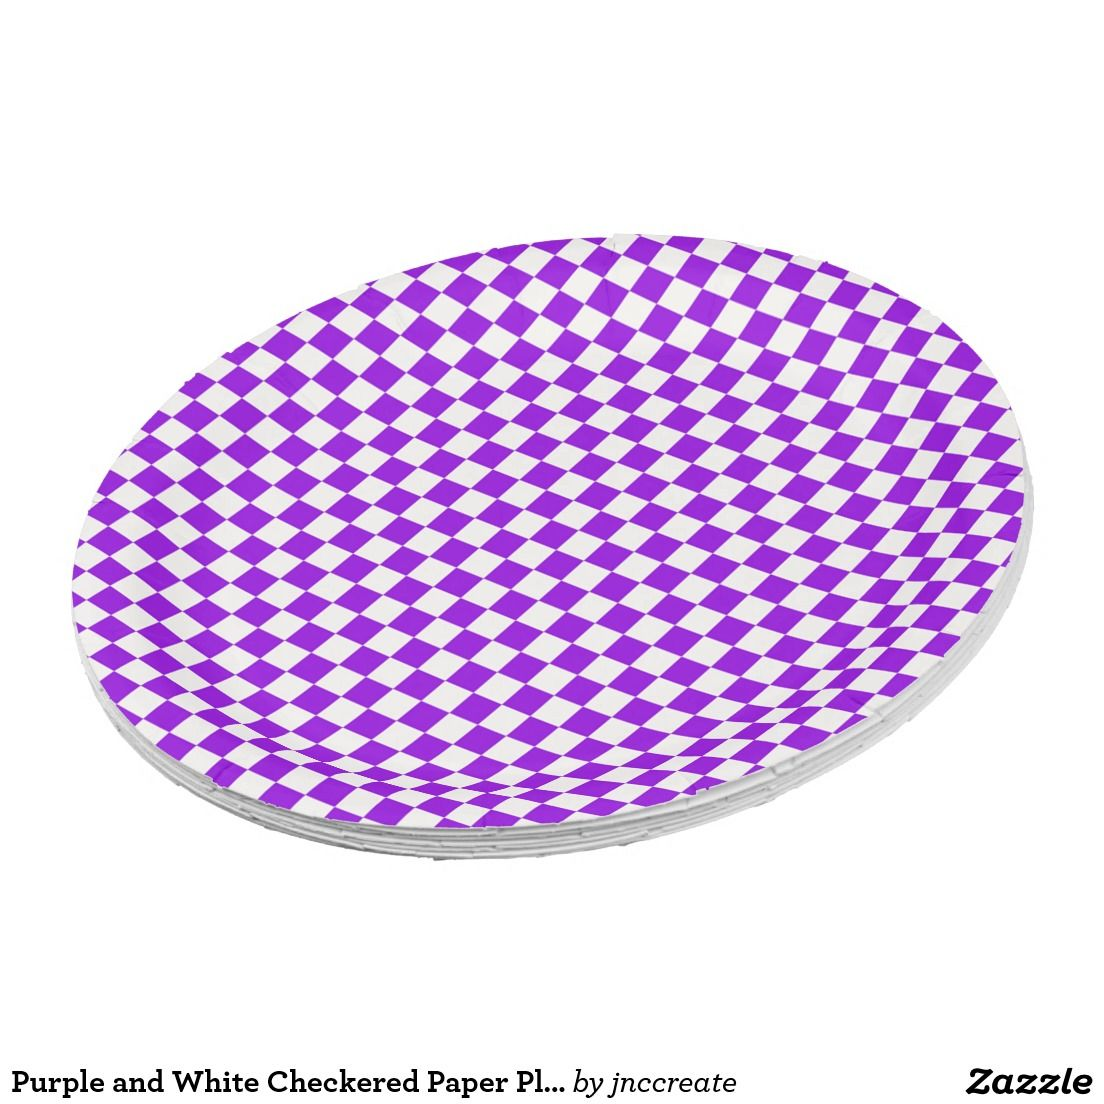 sc 1 st  Pinterest & Purple and White Checkered Paper Plates